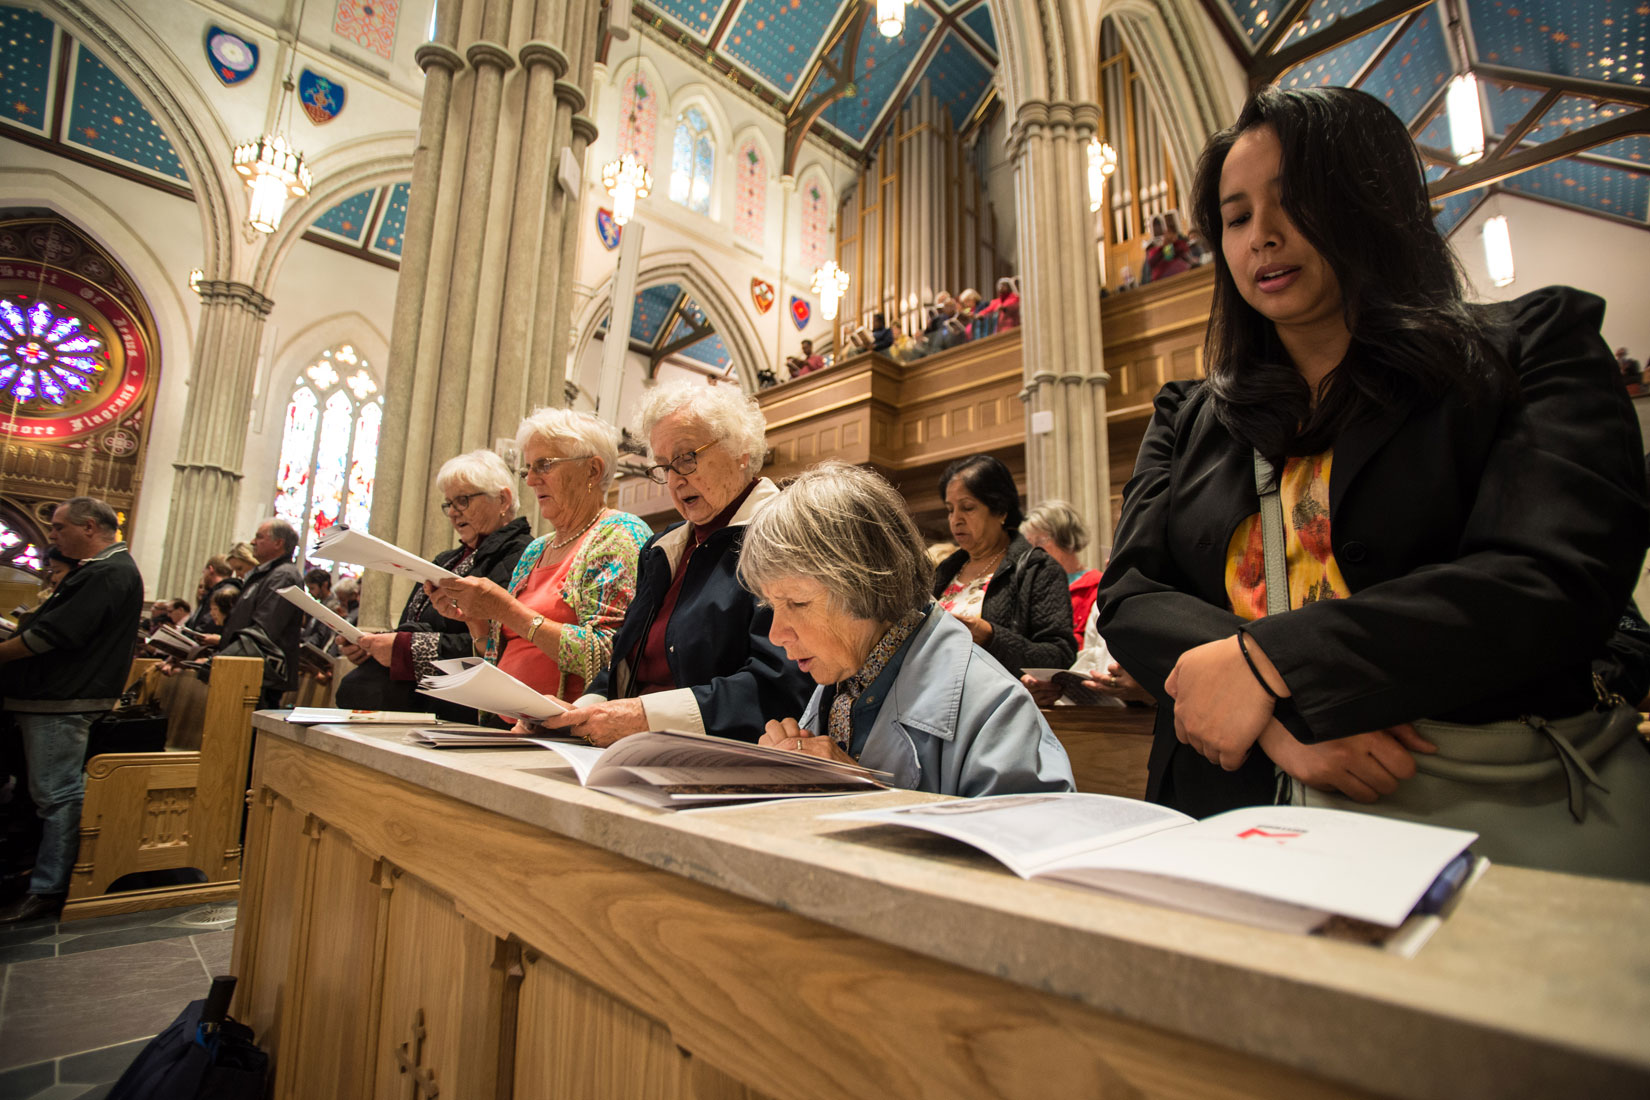 Women praying at the workers' thanksgiving Mass at St. Michael's Cathedral, Sept. 30. (Photo by Michael Swan)